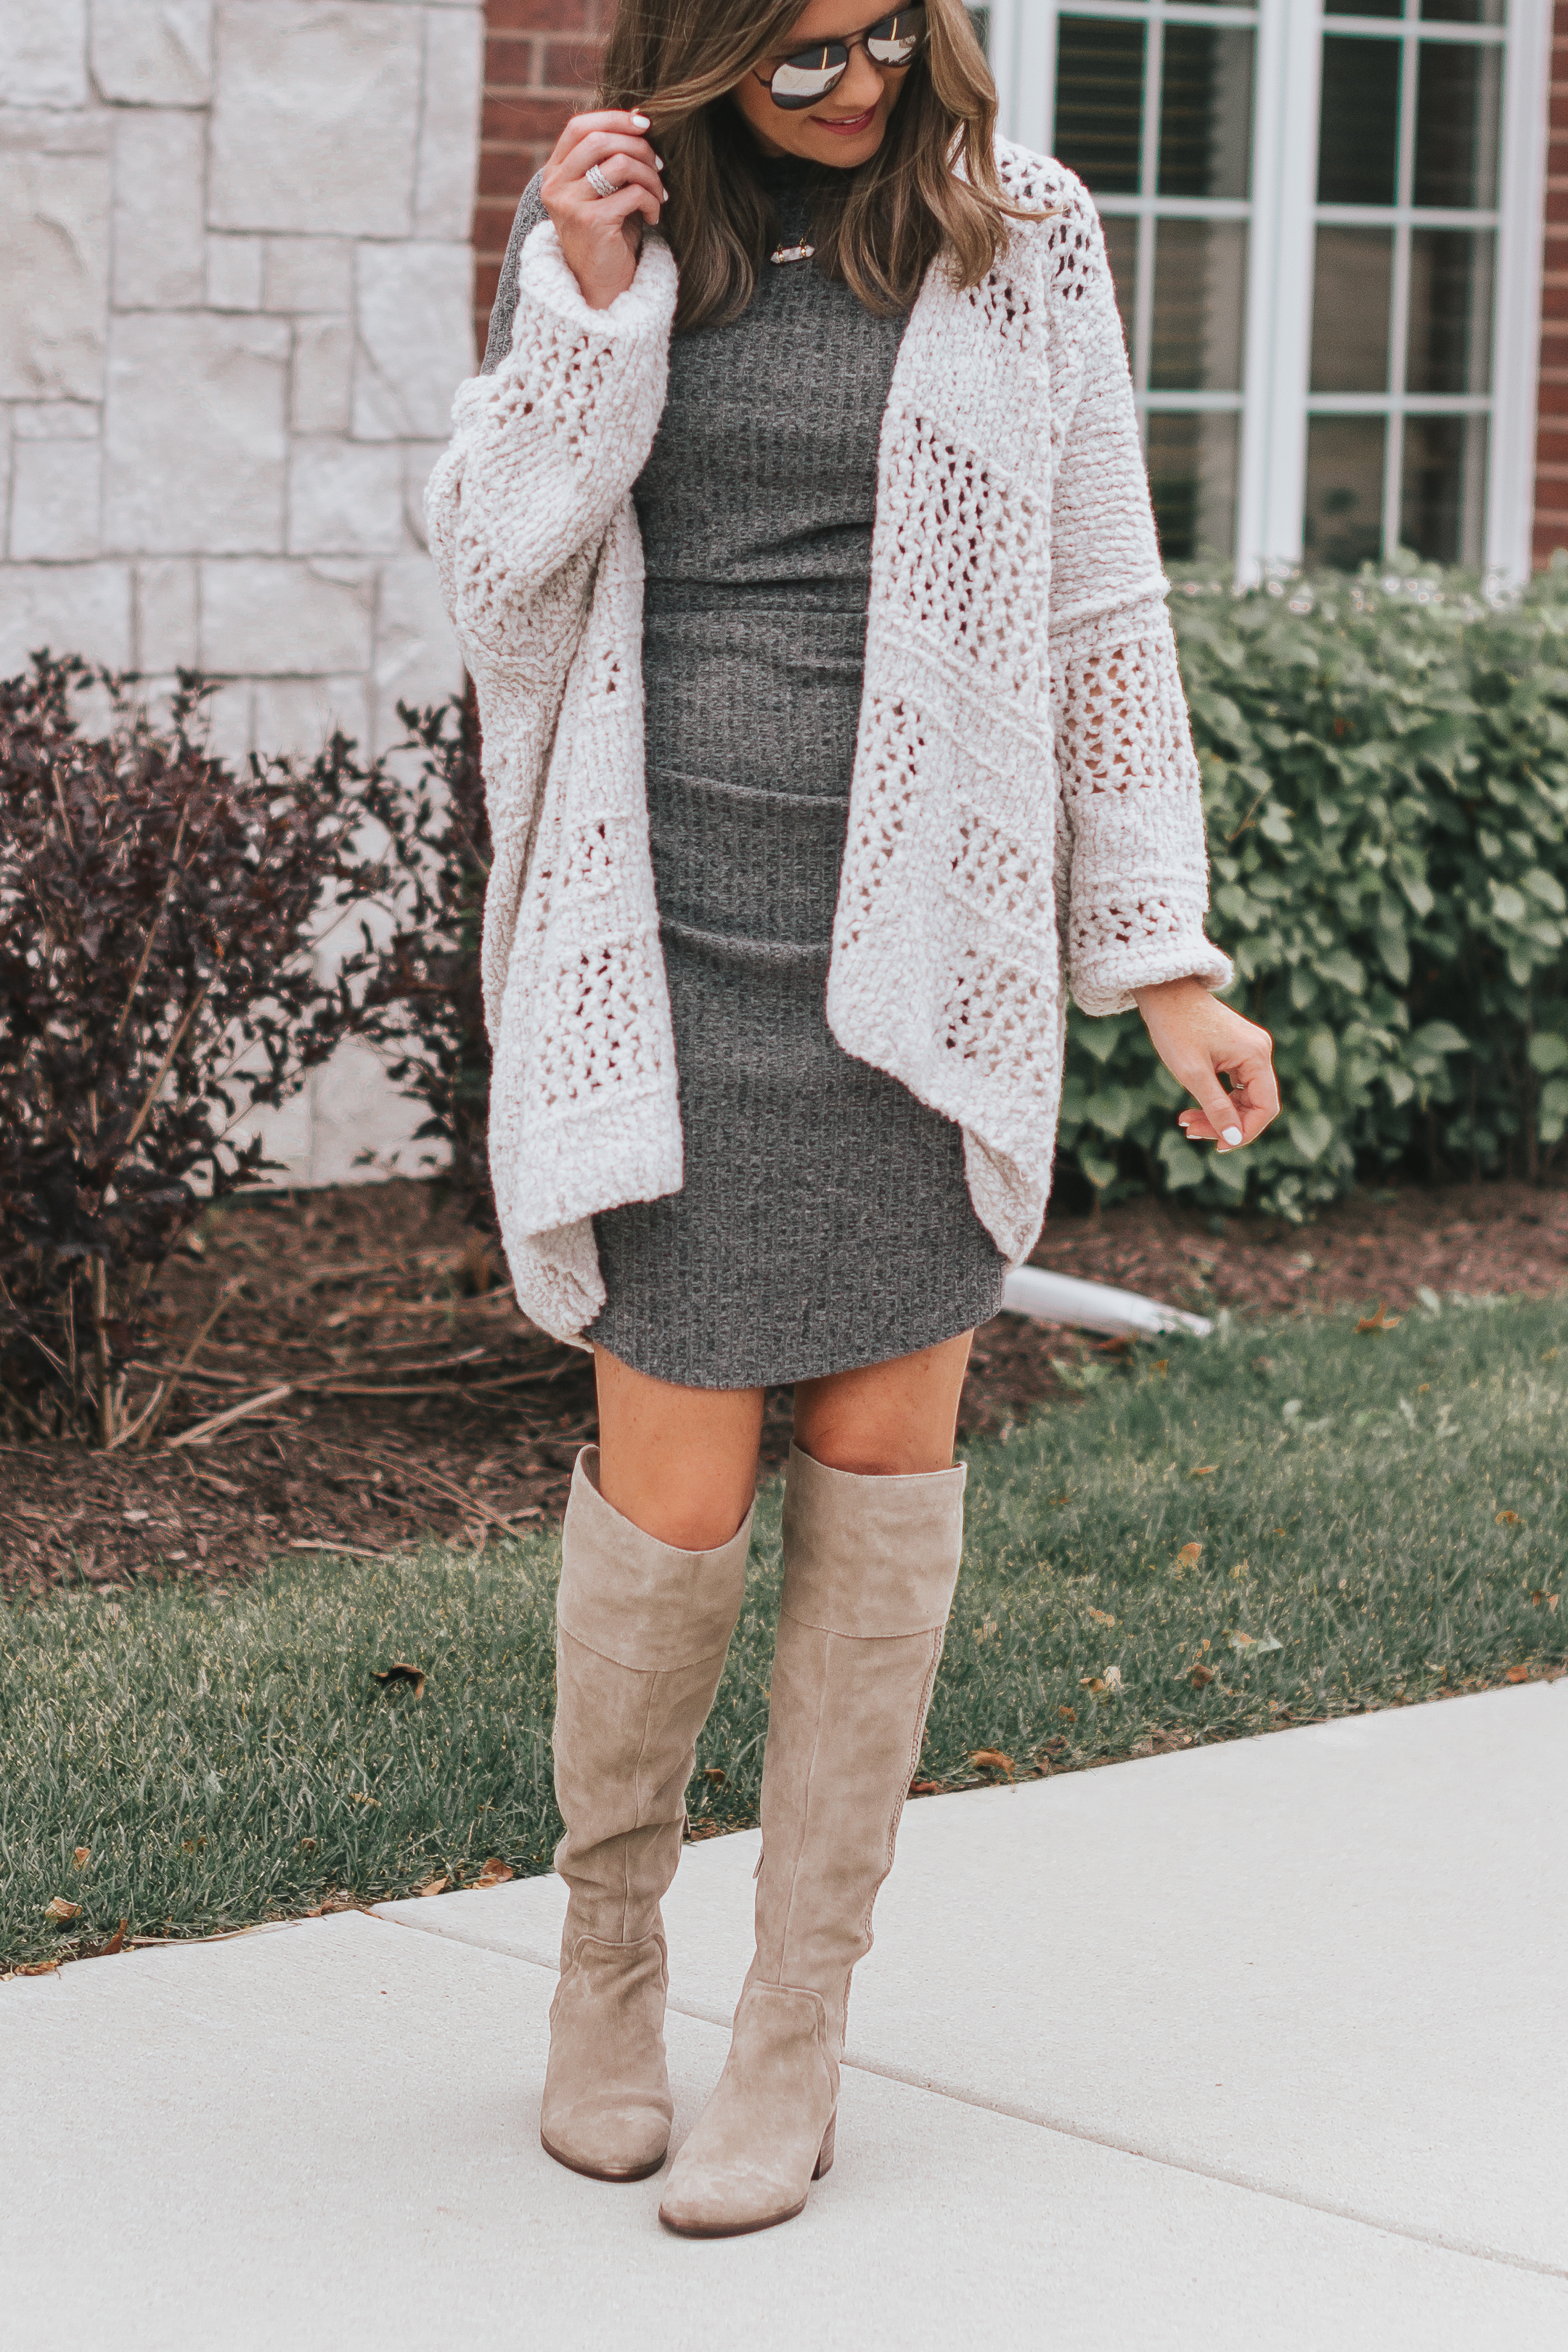 moms-casual-chic-outfit-mom-style